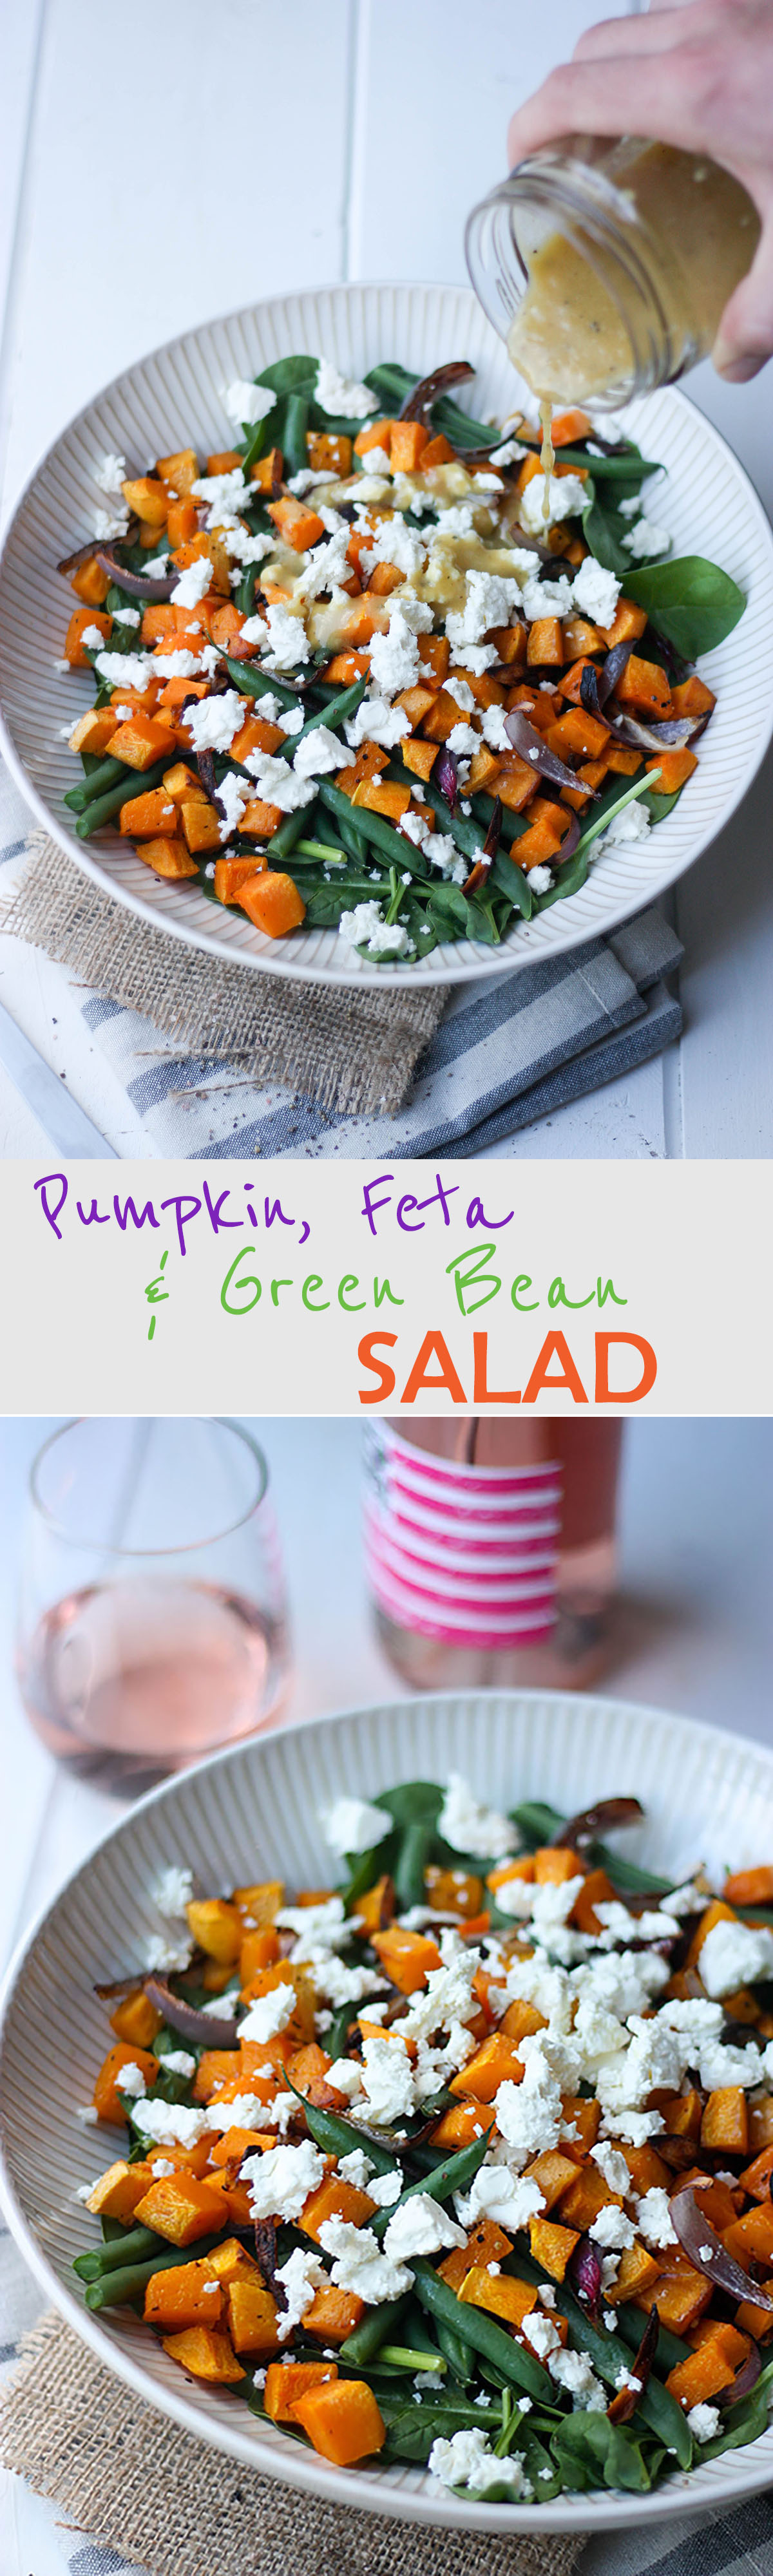 Pumpkin, Feta & Green Bean Salad - perfect for entertaining find the recipes at www.thehomecookskitchen.com